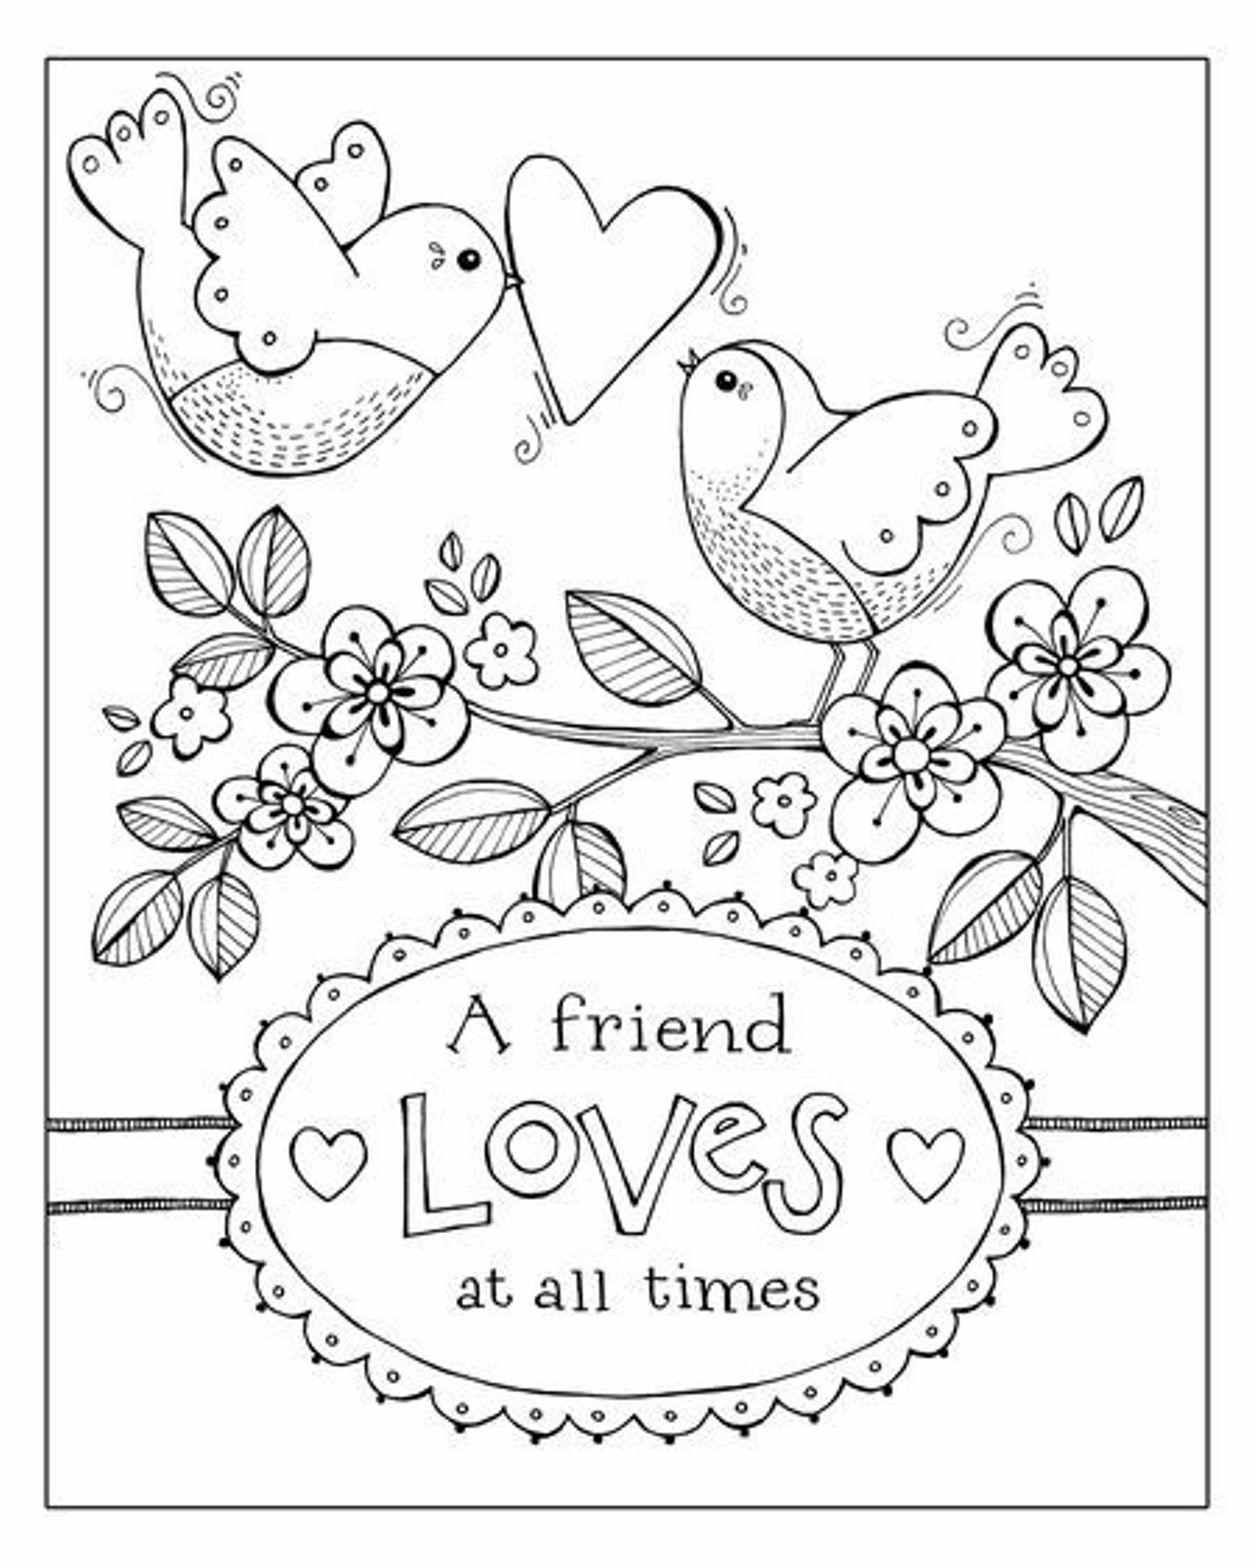 Pin by Tori Brumback on Friendship | Pinterest | Adult coloring ...